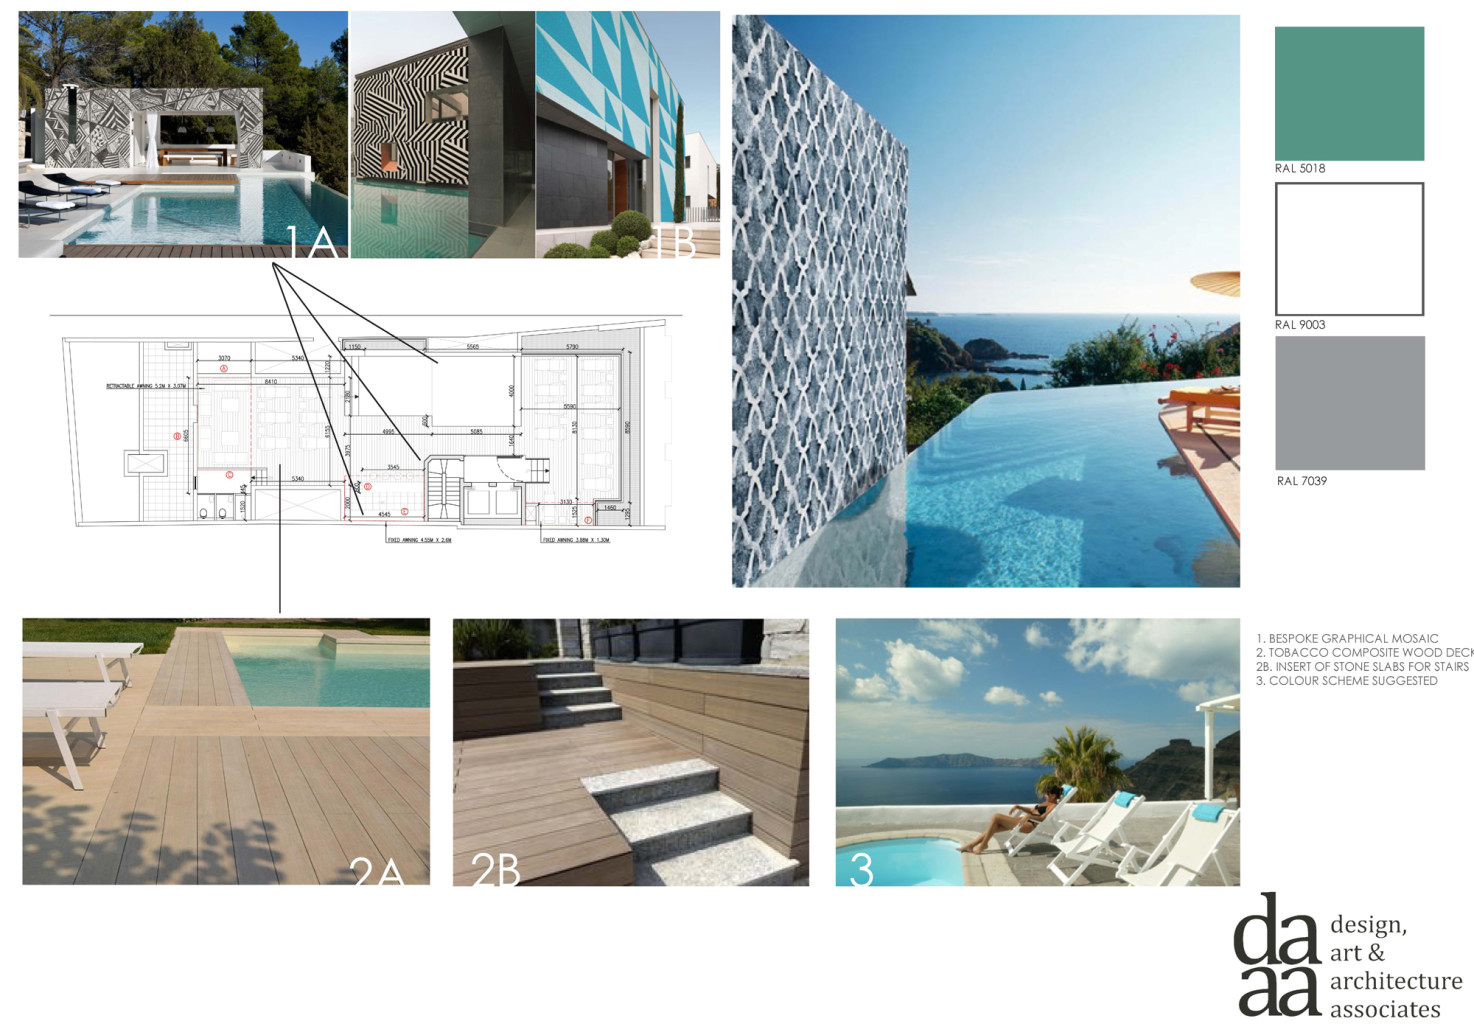 Hotel juliani concept board 3